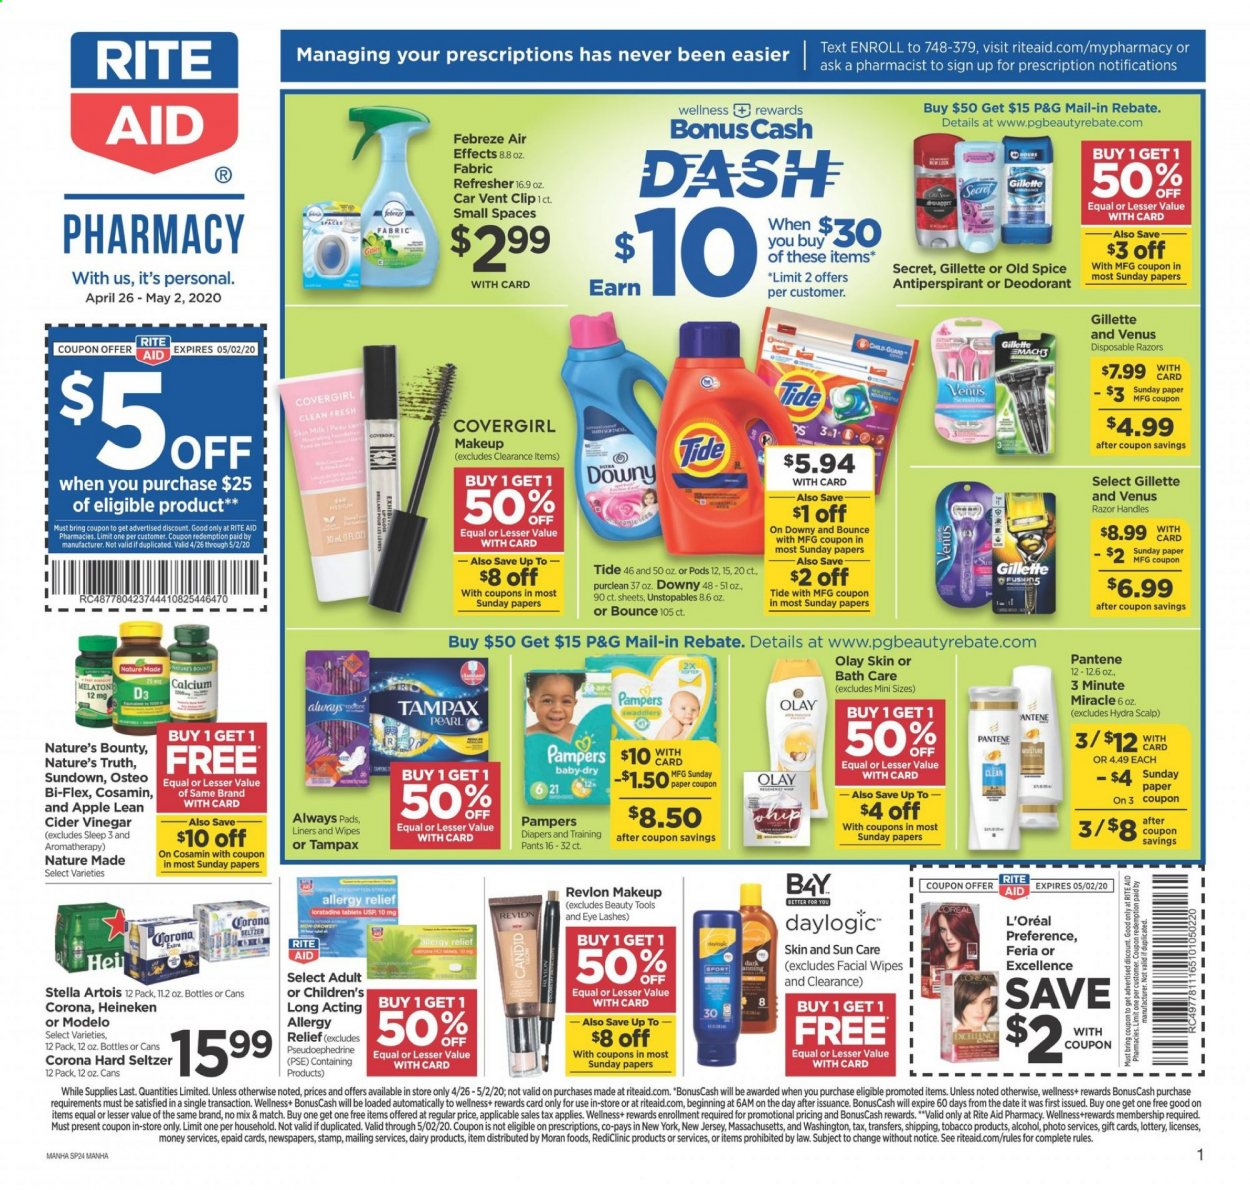 RITE AID Flyer - 04.26.2020 - 05.02.2020 - Sales products - Stella Artois, Corona, Bounty, seltzer, Pampers, diapers, Febreze, wipes, Downy, Tide, Unstopables, Old Spice, Tampax, Always pads, L'Oréal, Olay, refresher, Revlon, Pantene, anti-perspirant, secret, Gillette, Venus, tools, makeup, pad, calcium, Cosamin, Nature Made, Nature's Bounty, Nature's Truth, Osteo bi-flex, Bi-Flex, moisture. Page 1.